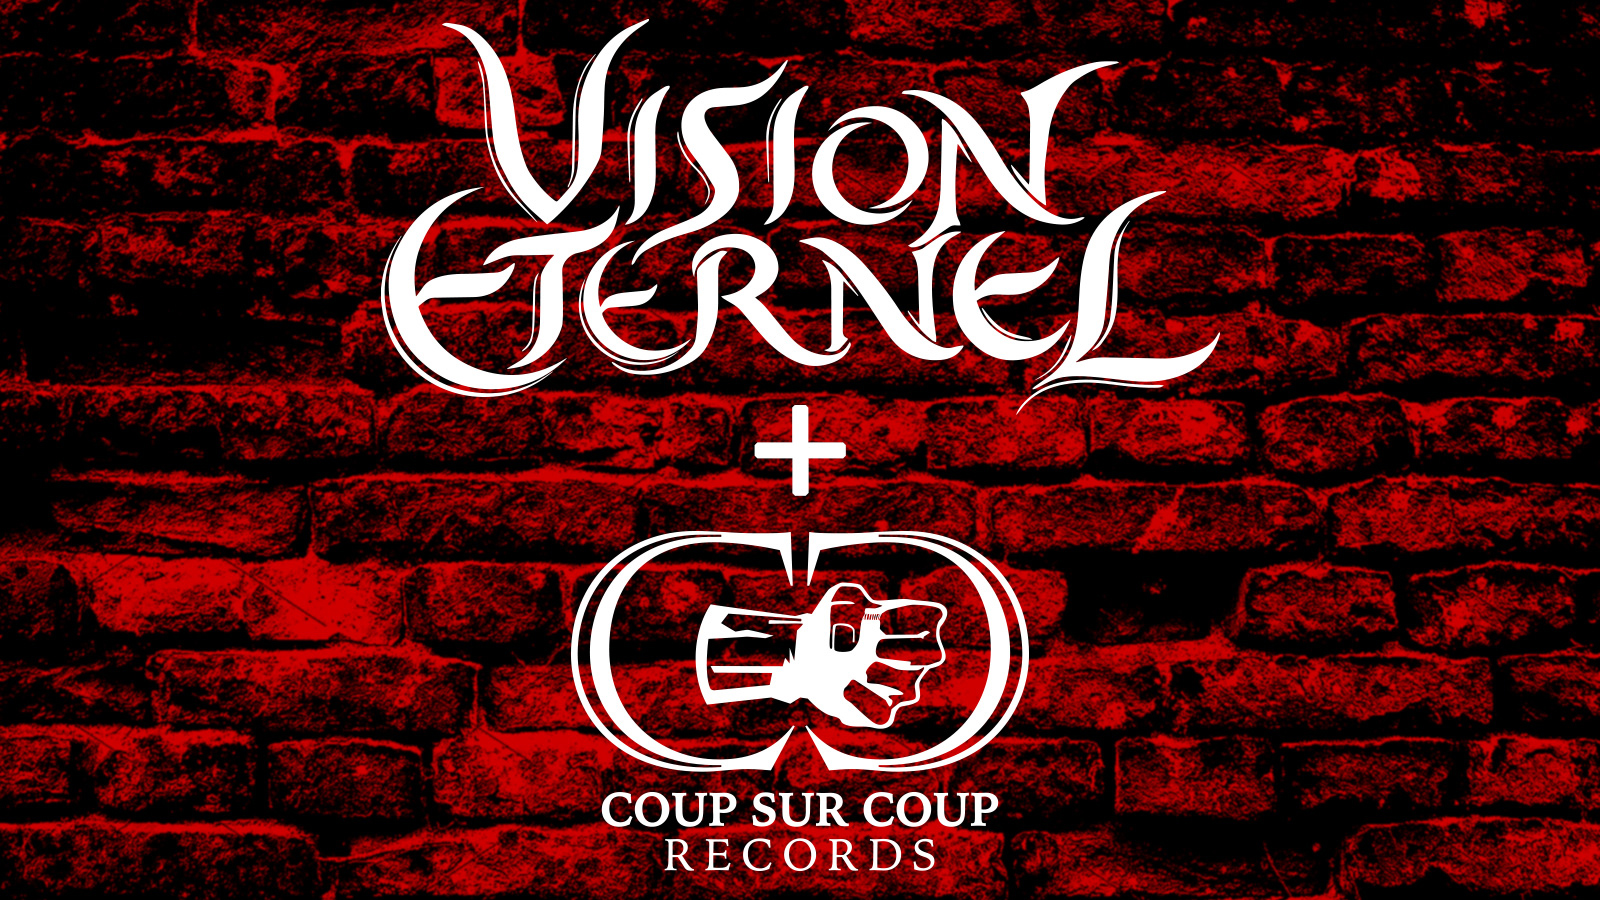 Vision Eternel To Collaborate With Coup Sur Coup Records